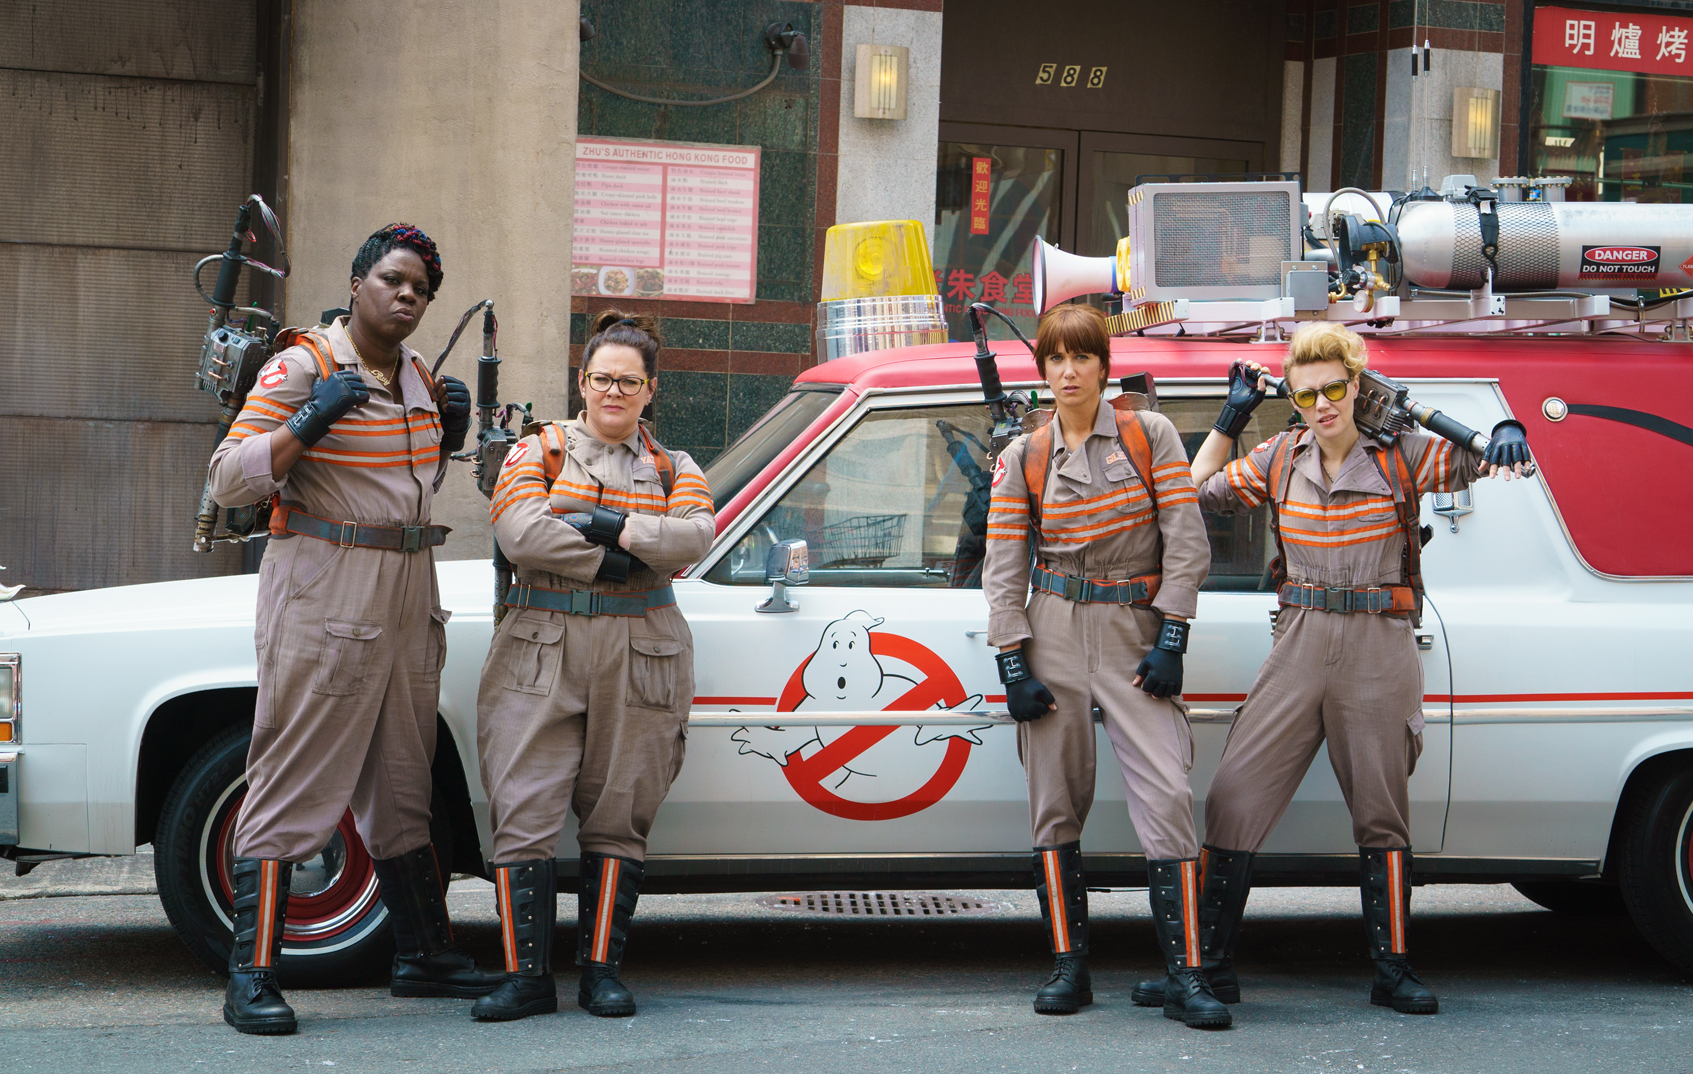 Leslie Jones, Melissa McCarthy, Kristen Wiig, and Kate McKinnon in GHOSTBUSTERS.